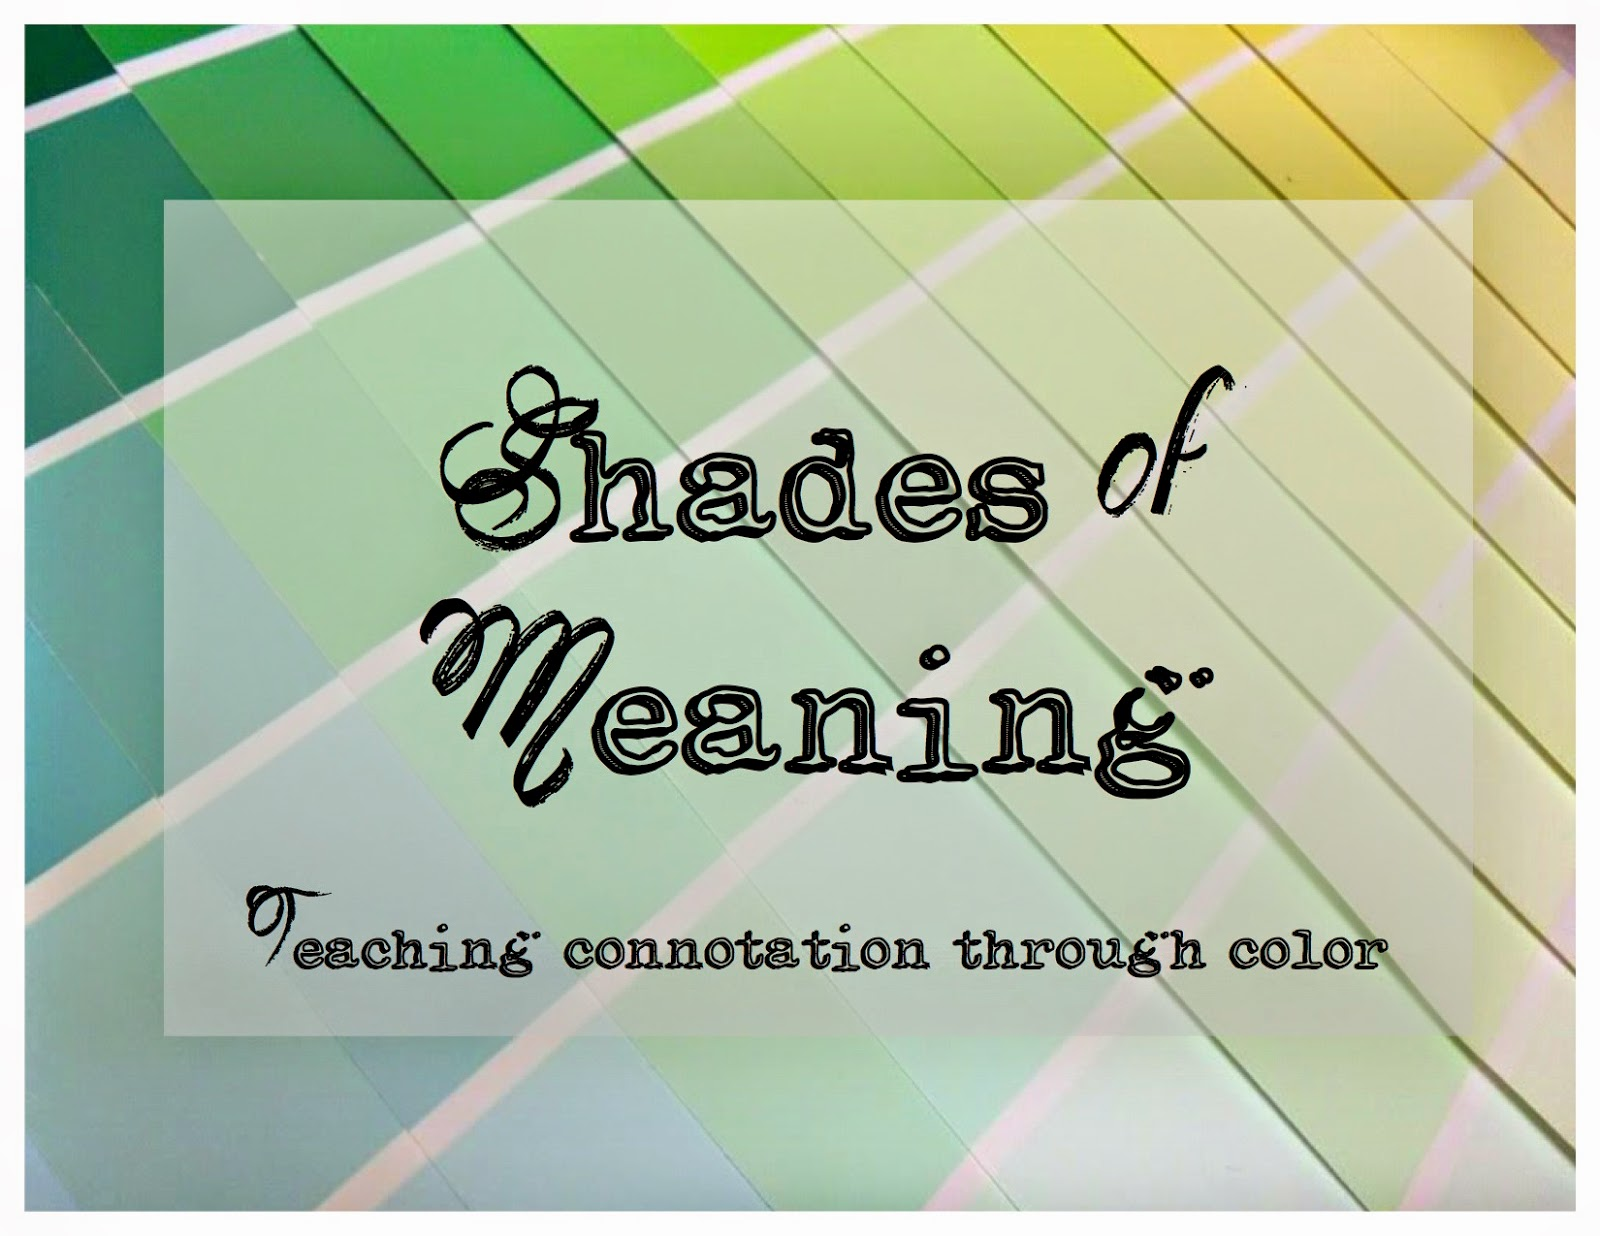 Innovating The Wheel Shades Of Meaning